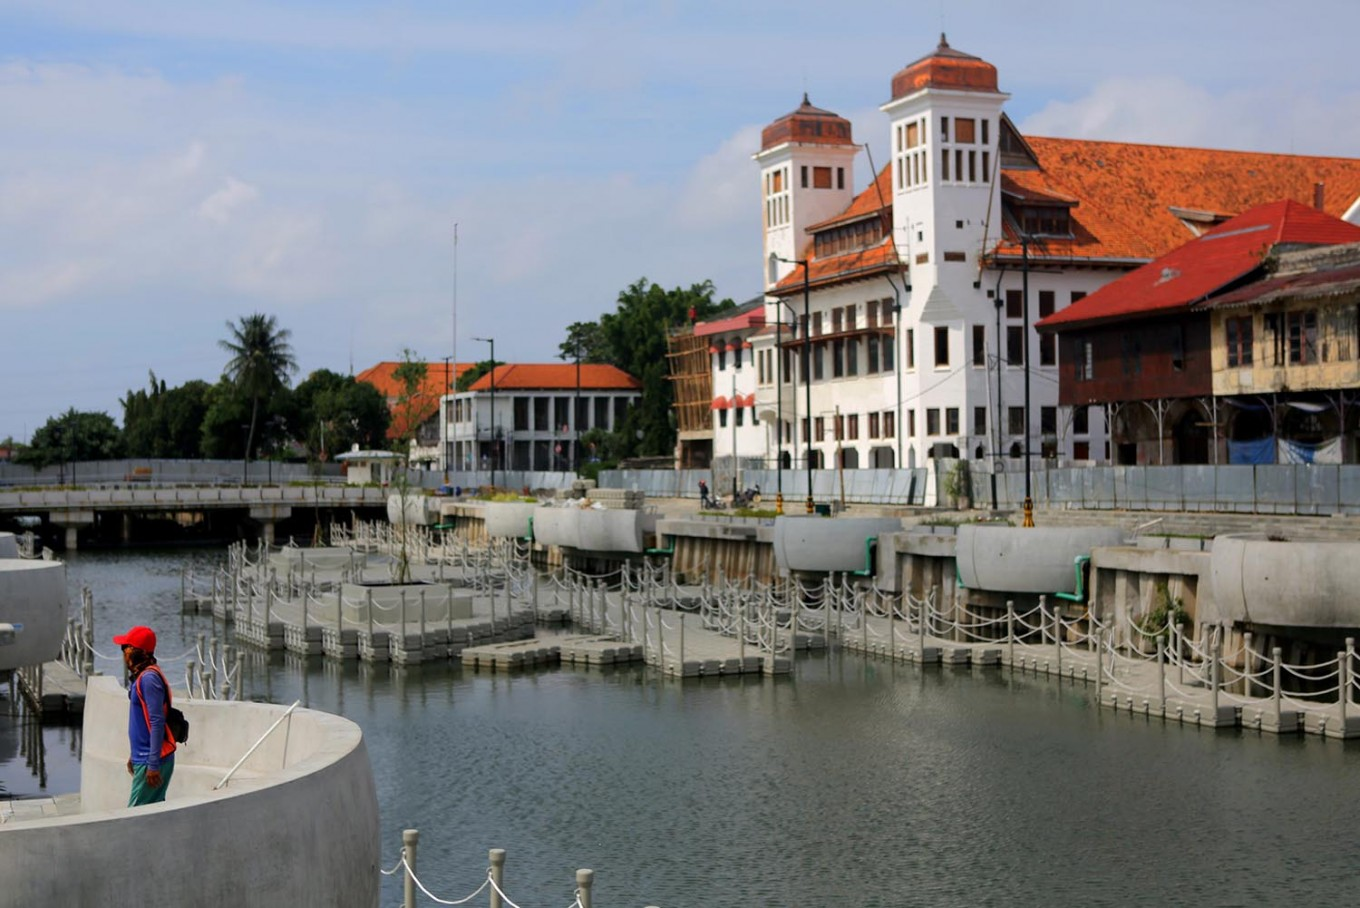 Lacking 'authenticity', Kota Tua fails to make UNESCO heritage list